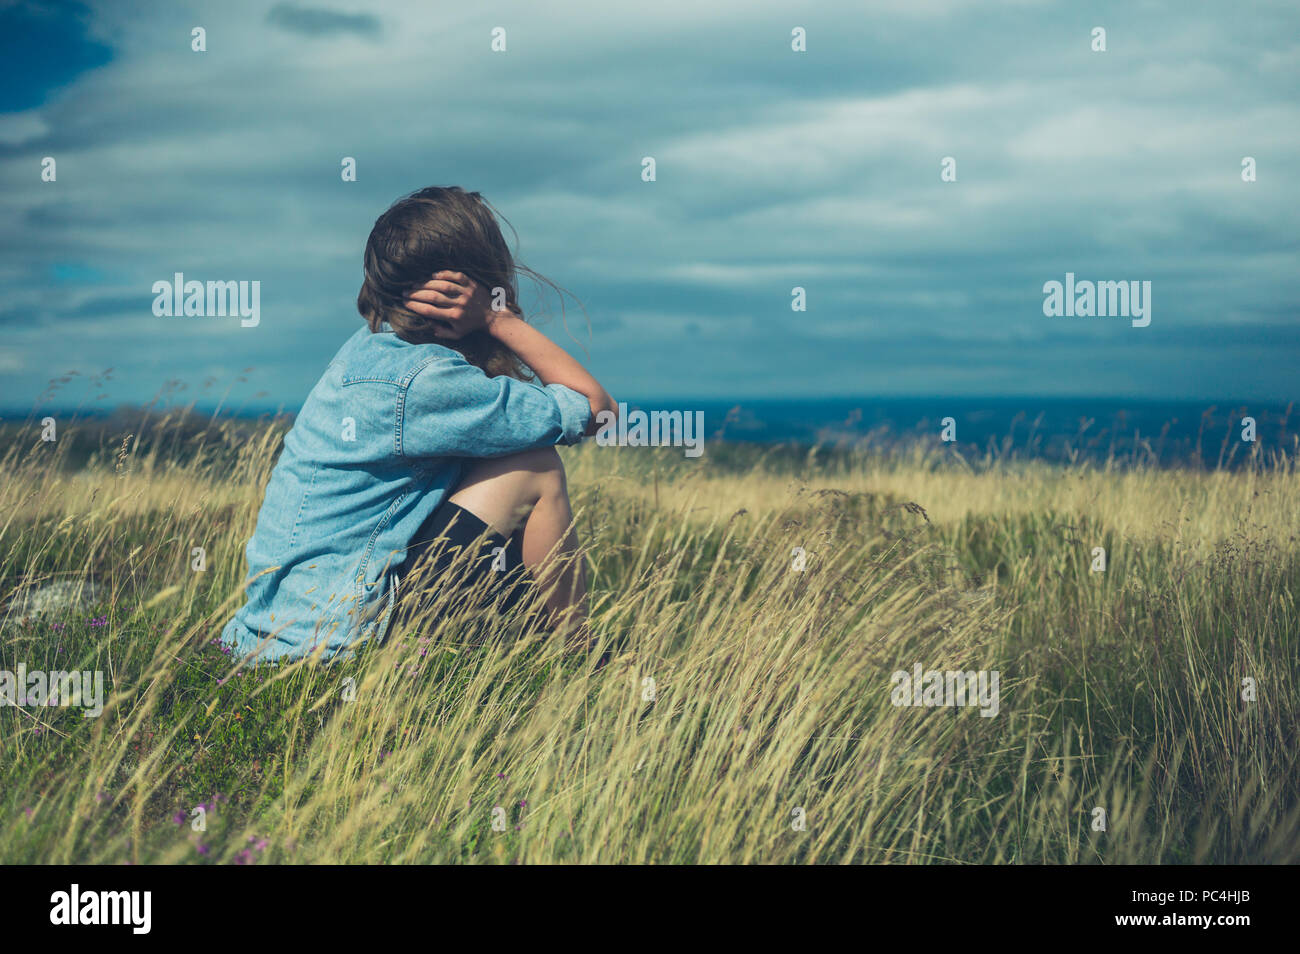 A sad woman is sitting in a field on a windy day - Stock Image